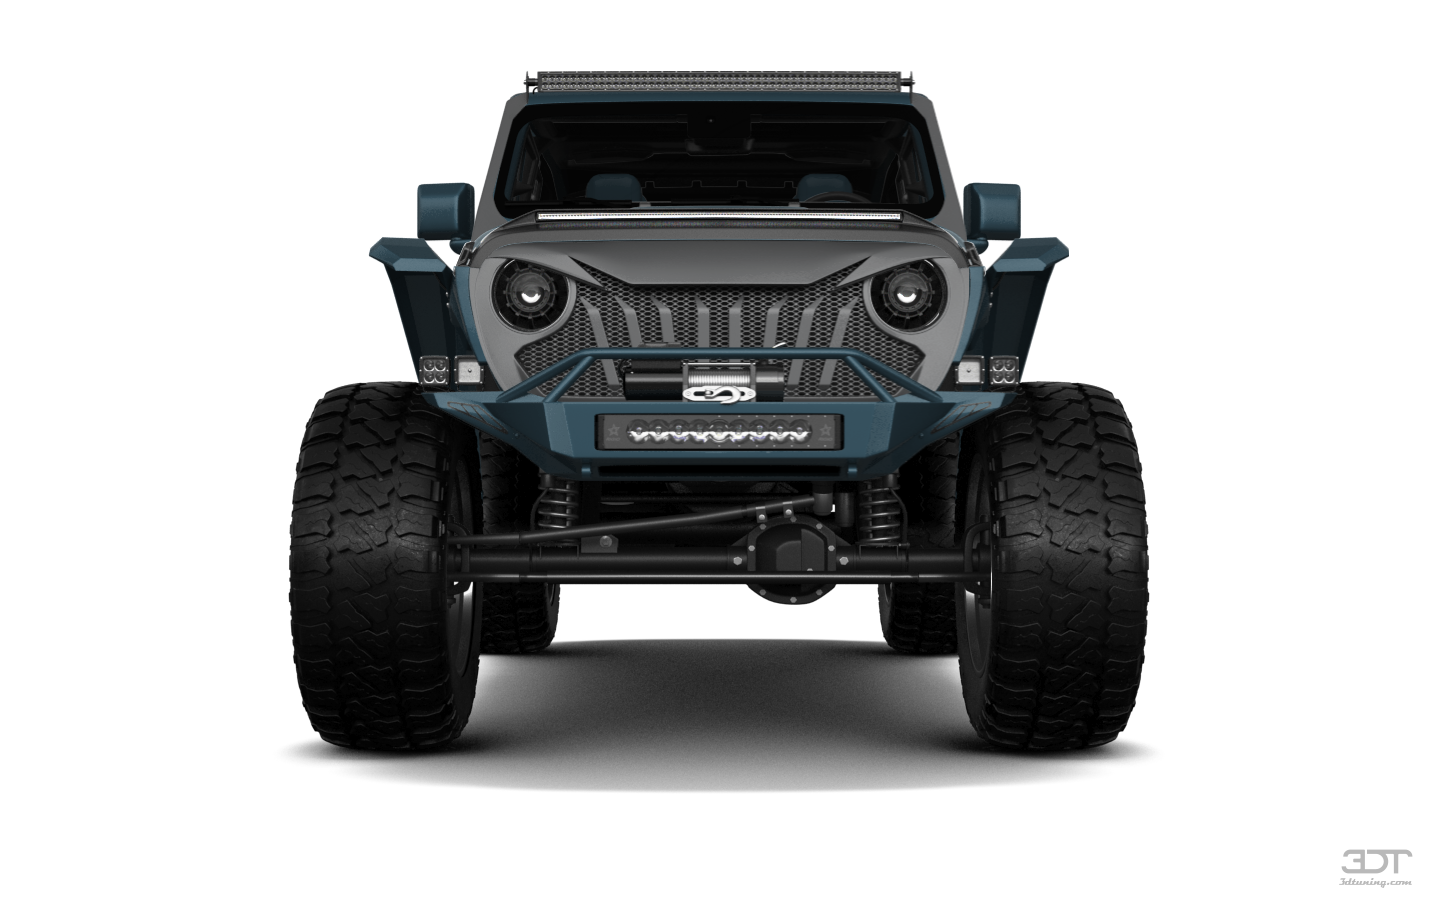 Jeep Wrangler Rubicon JL 4 Door SUV 2017